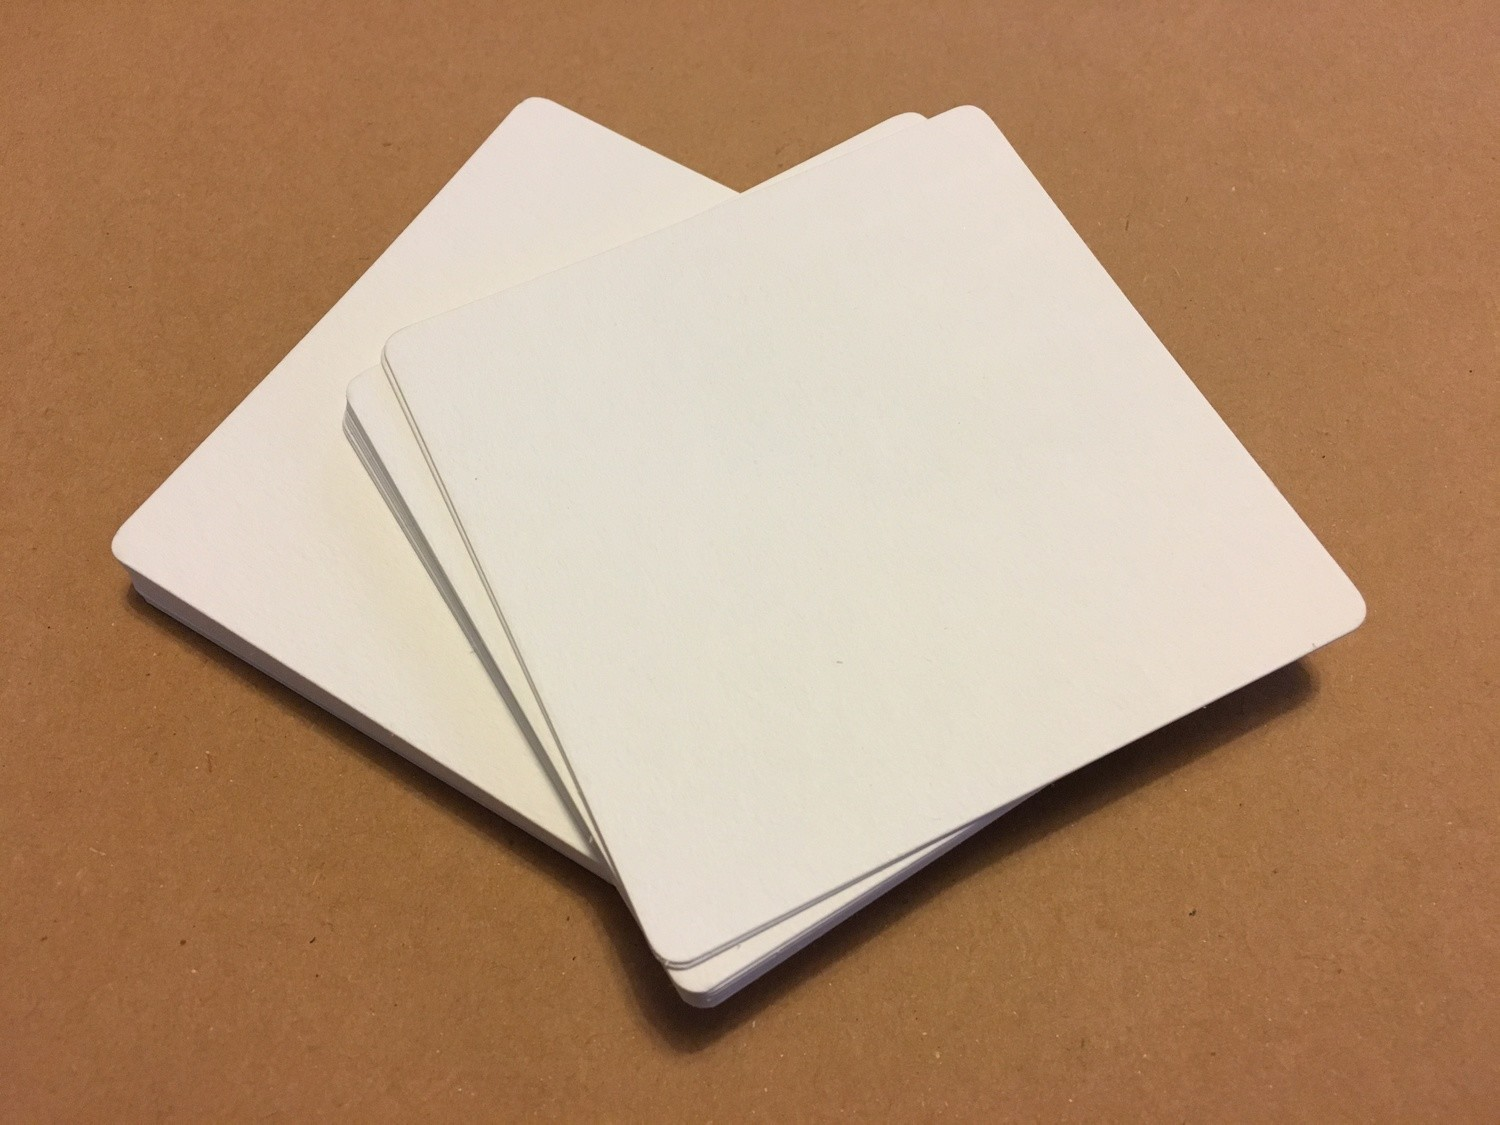 "30 -  White 3 1/2"" square tangle tiles paper weight 140lb cold press"